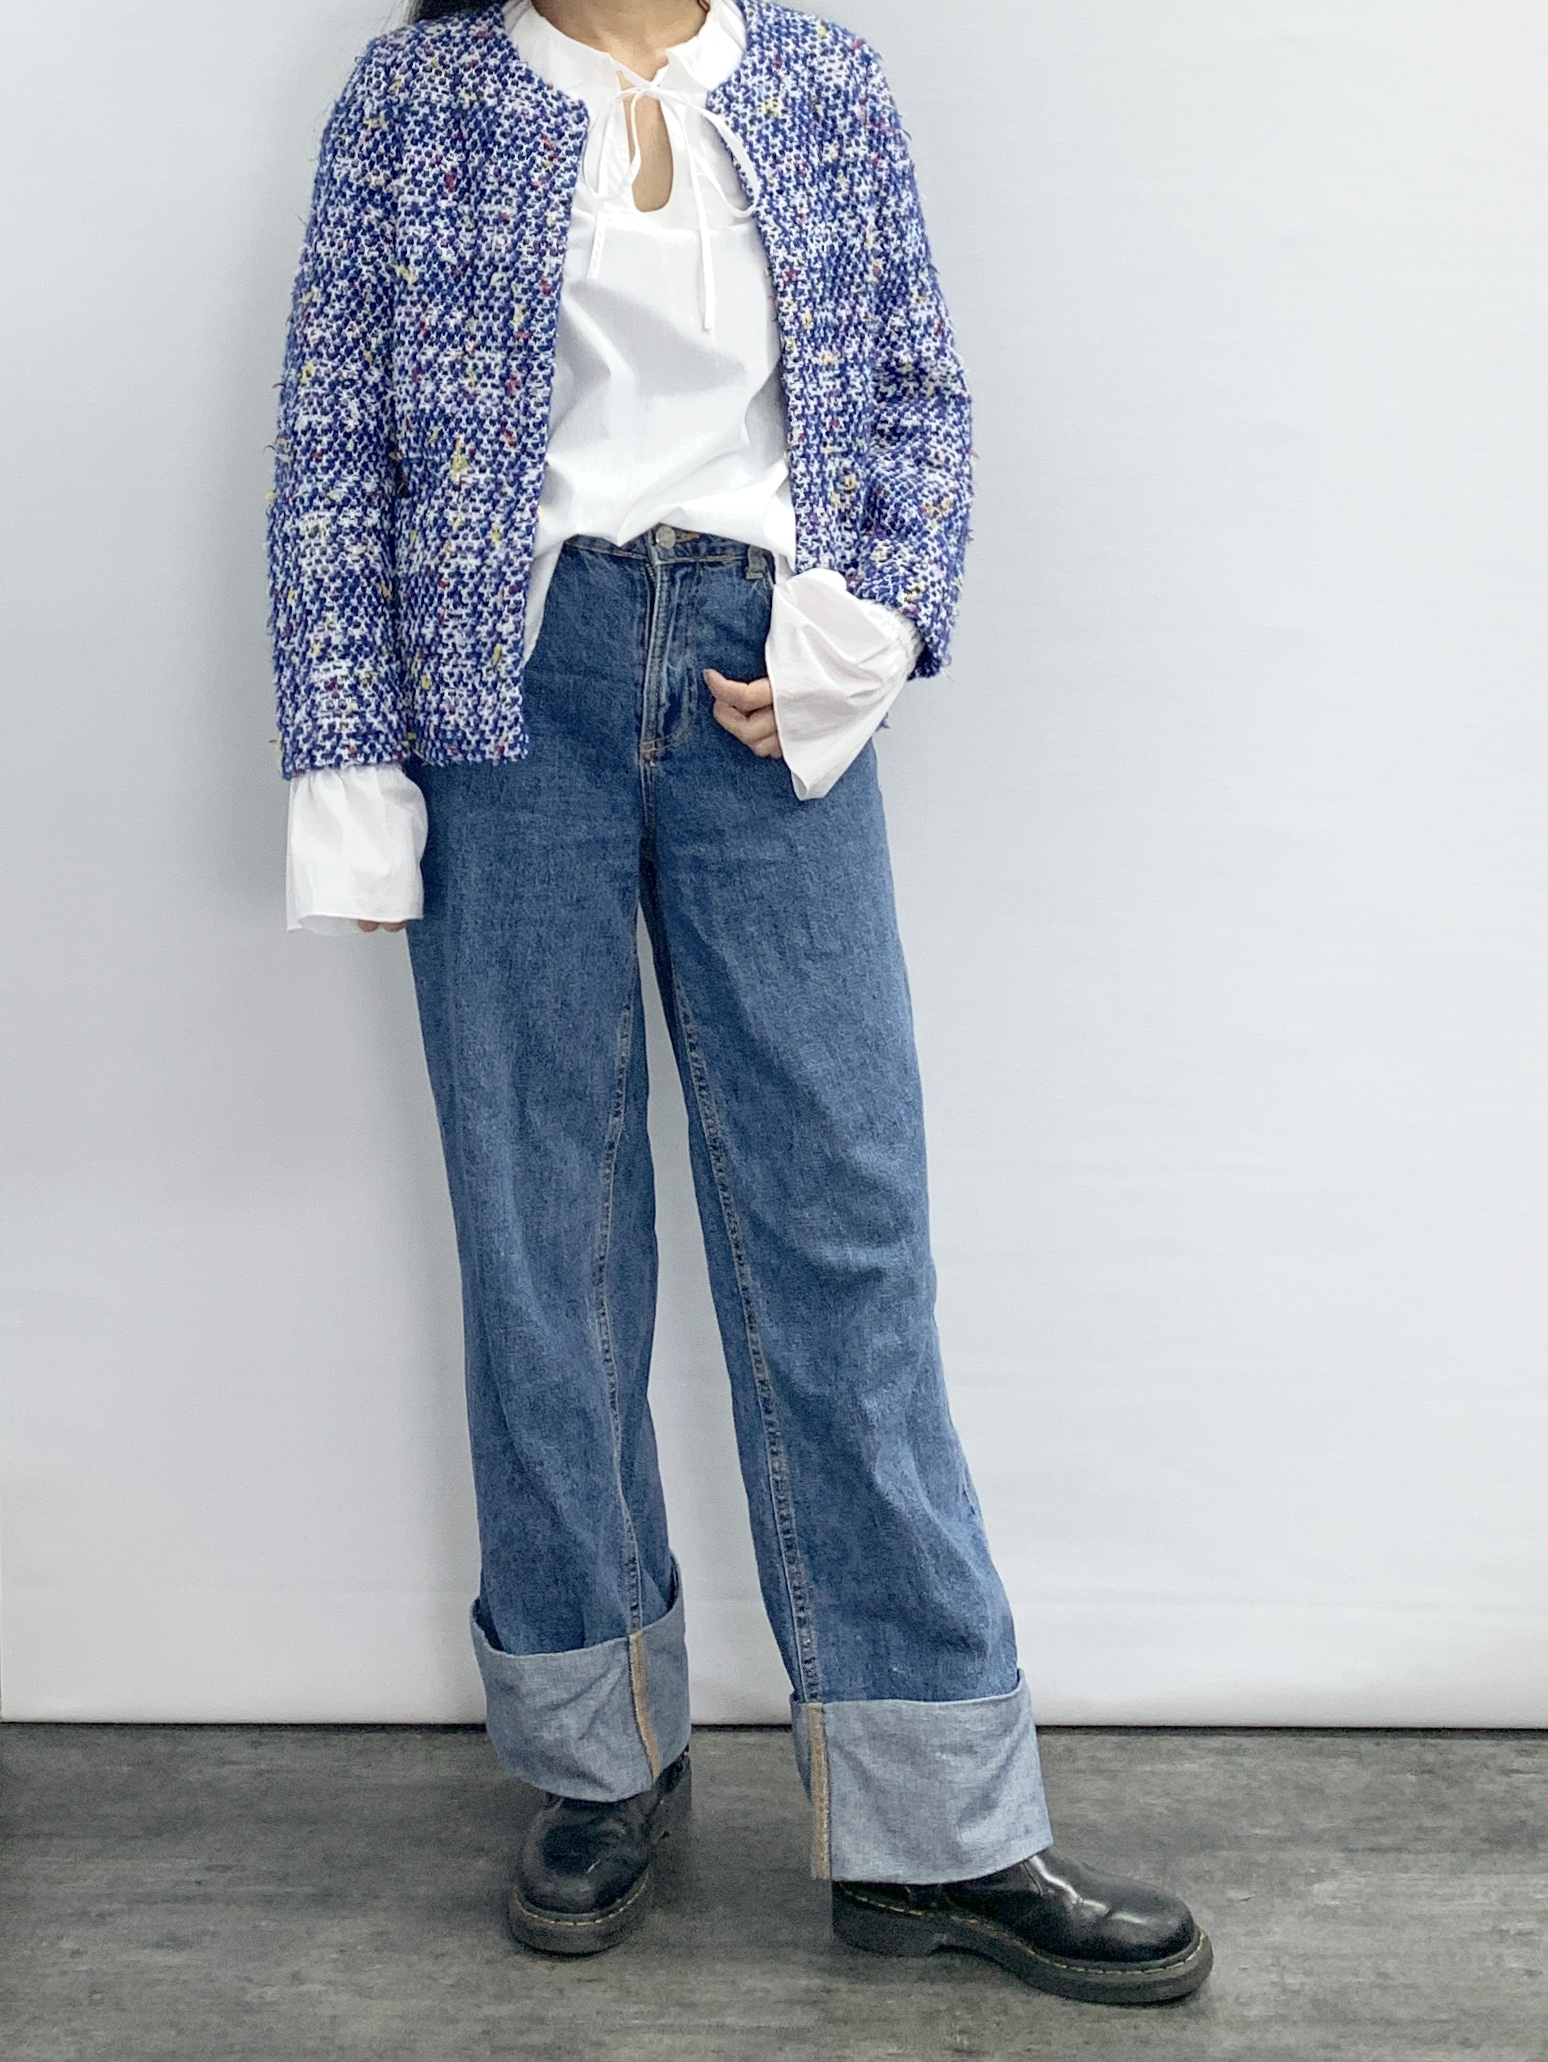 【>>>BACKSTAGE  2019AW RECOMMENDED STYLING #009】